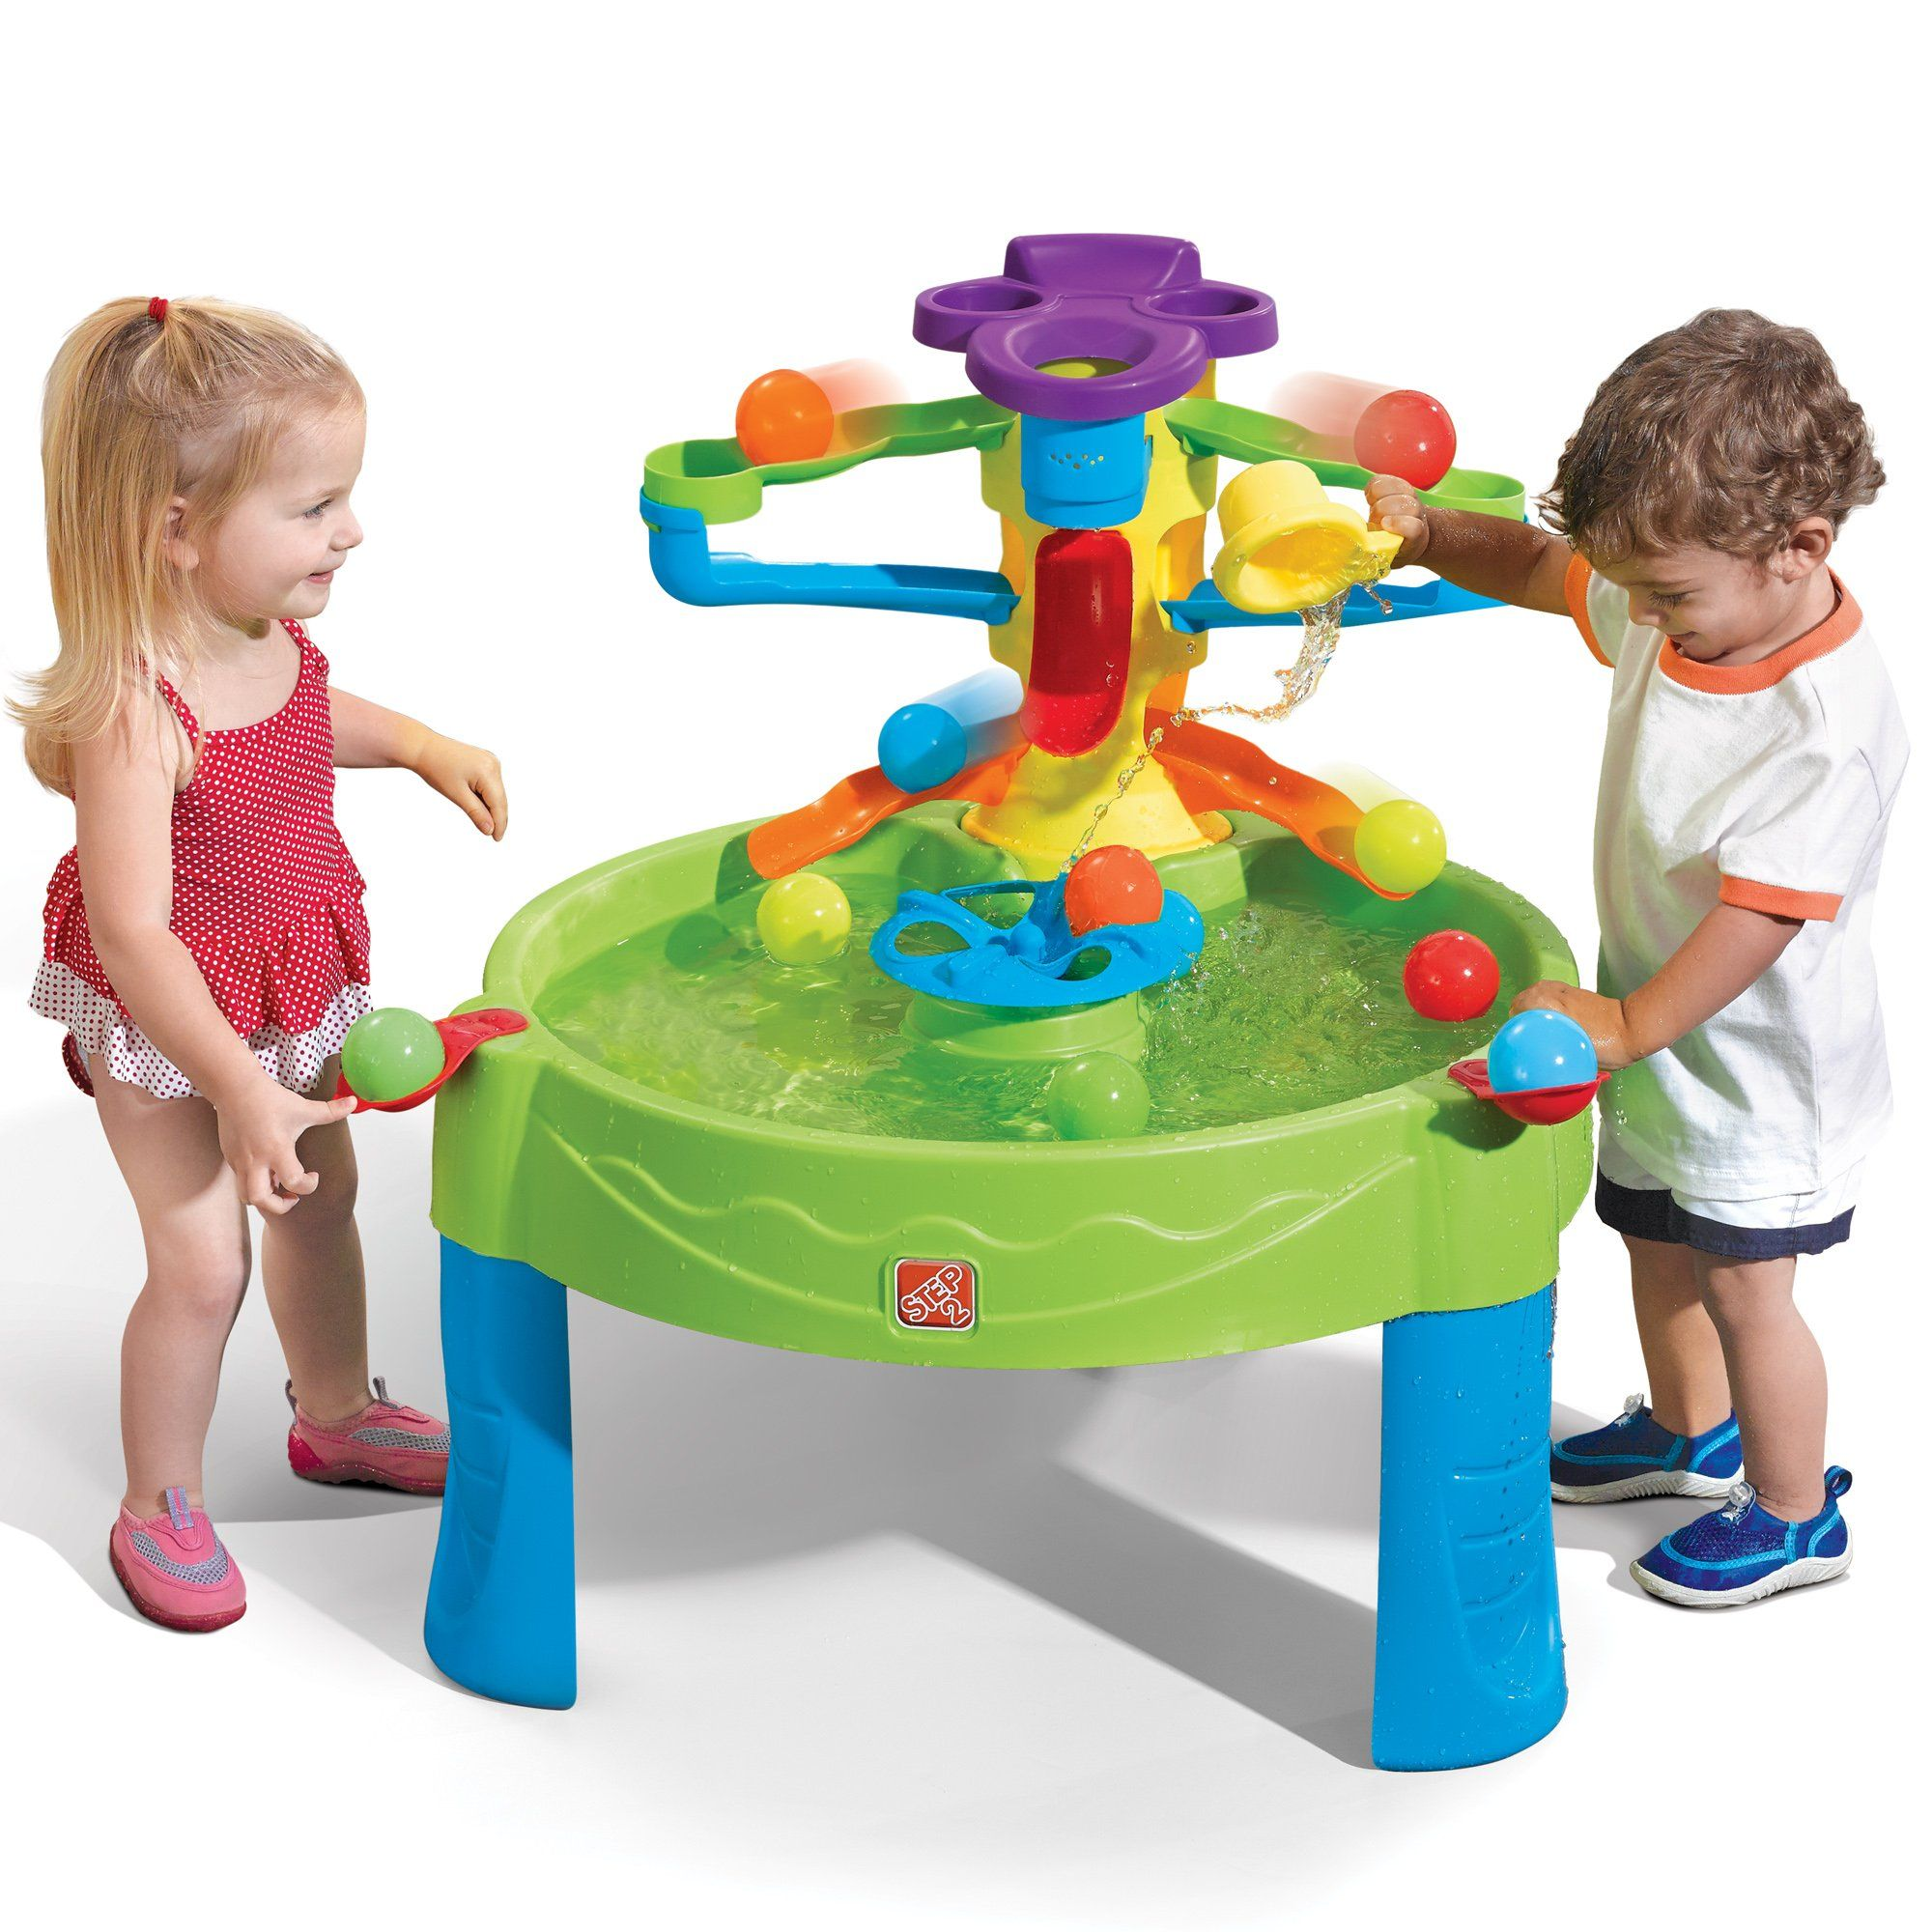 Step2 Busy Ball Play Table Looks Like So Much Fun Kids Play